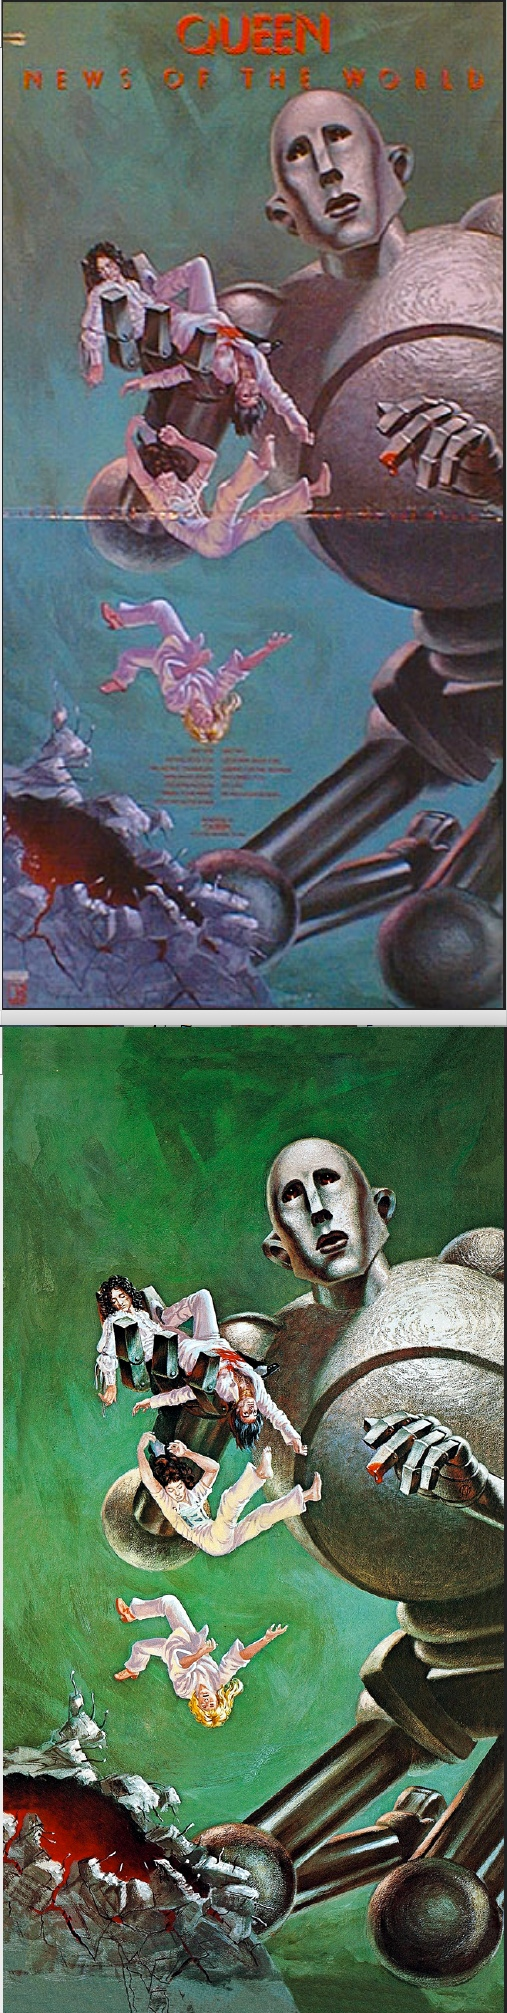 Frank Kelly Freas Queen News Of The World 1977 Electra Records Cover By First Draft Com Print By Fimfiction Net Art Artist Inspiration Fantasy Art